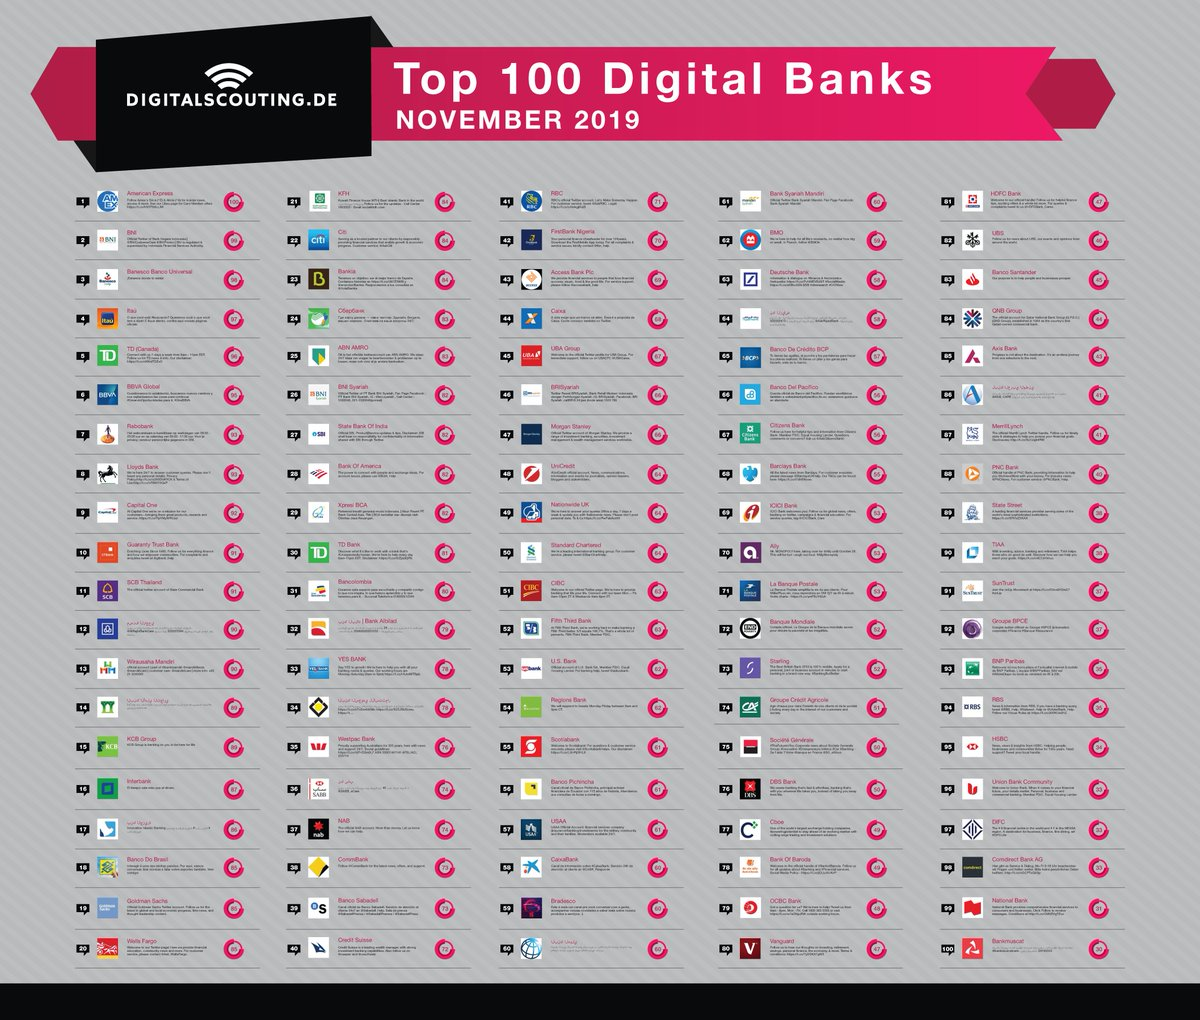 """RT stratorob """"Here our overview of the top 100 digital banks. Congrats to all. https://snip.ly/alxcv7 hdfc_bank ubs bancosantander qnbgroup axisbank anb_bank merrilllynch pncbank statestreet tiaa #fintech #AI #Cloud #VRTeam """" Thanks for this."""